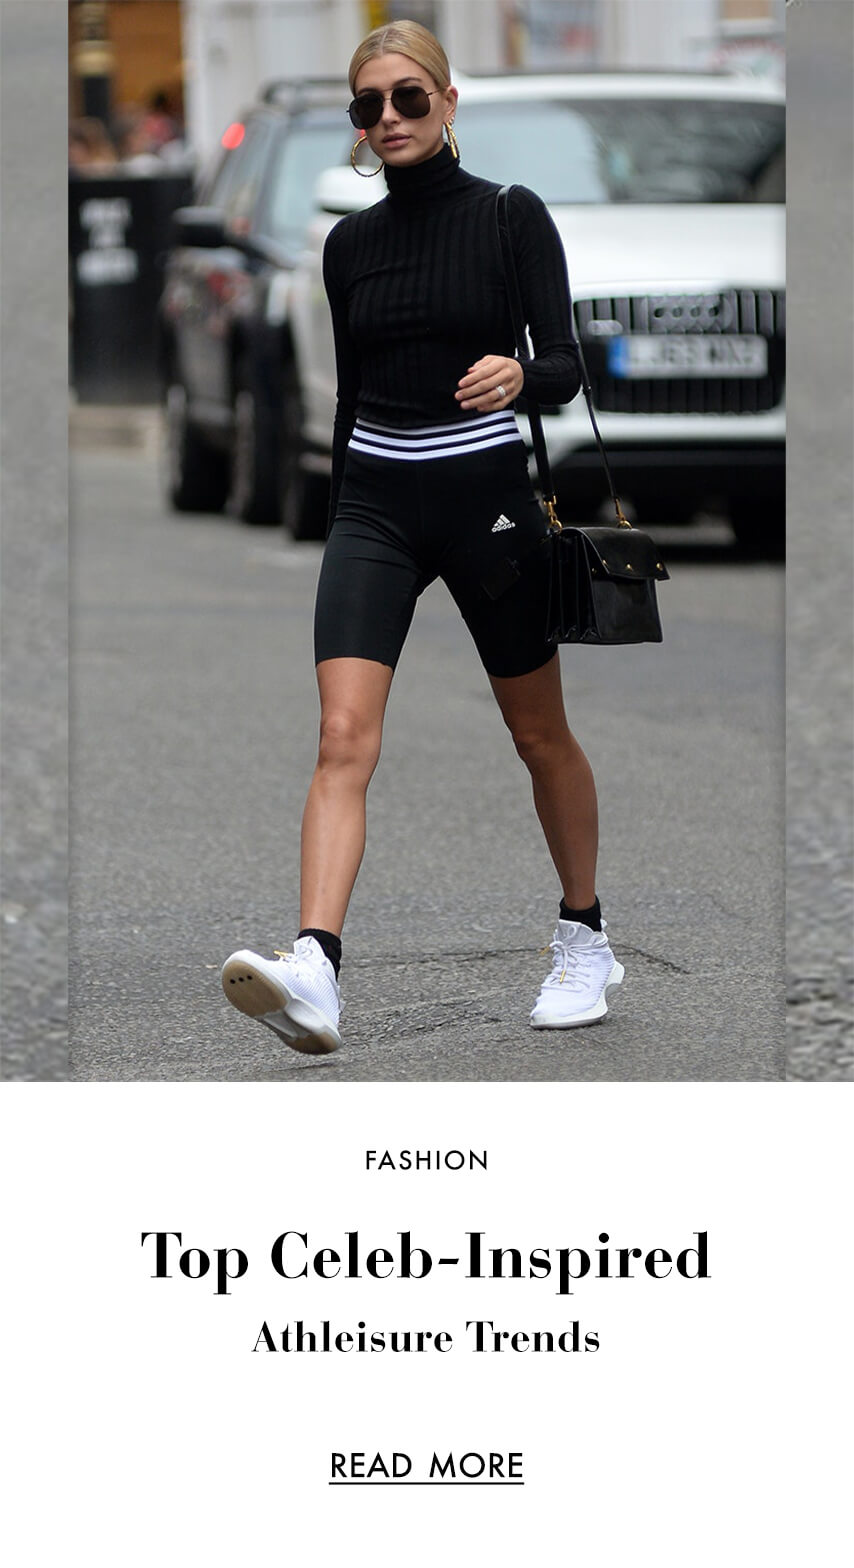 Top Celeb-Inspired    Trends For Your Fitness Fashion